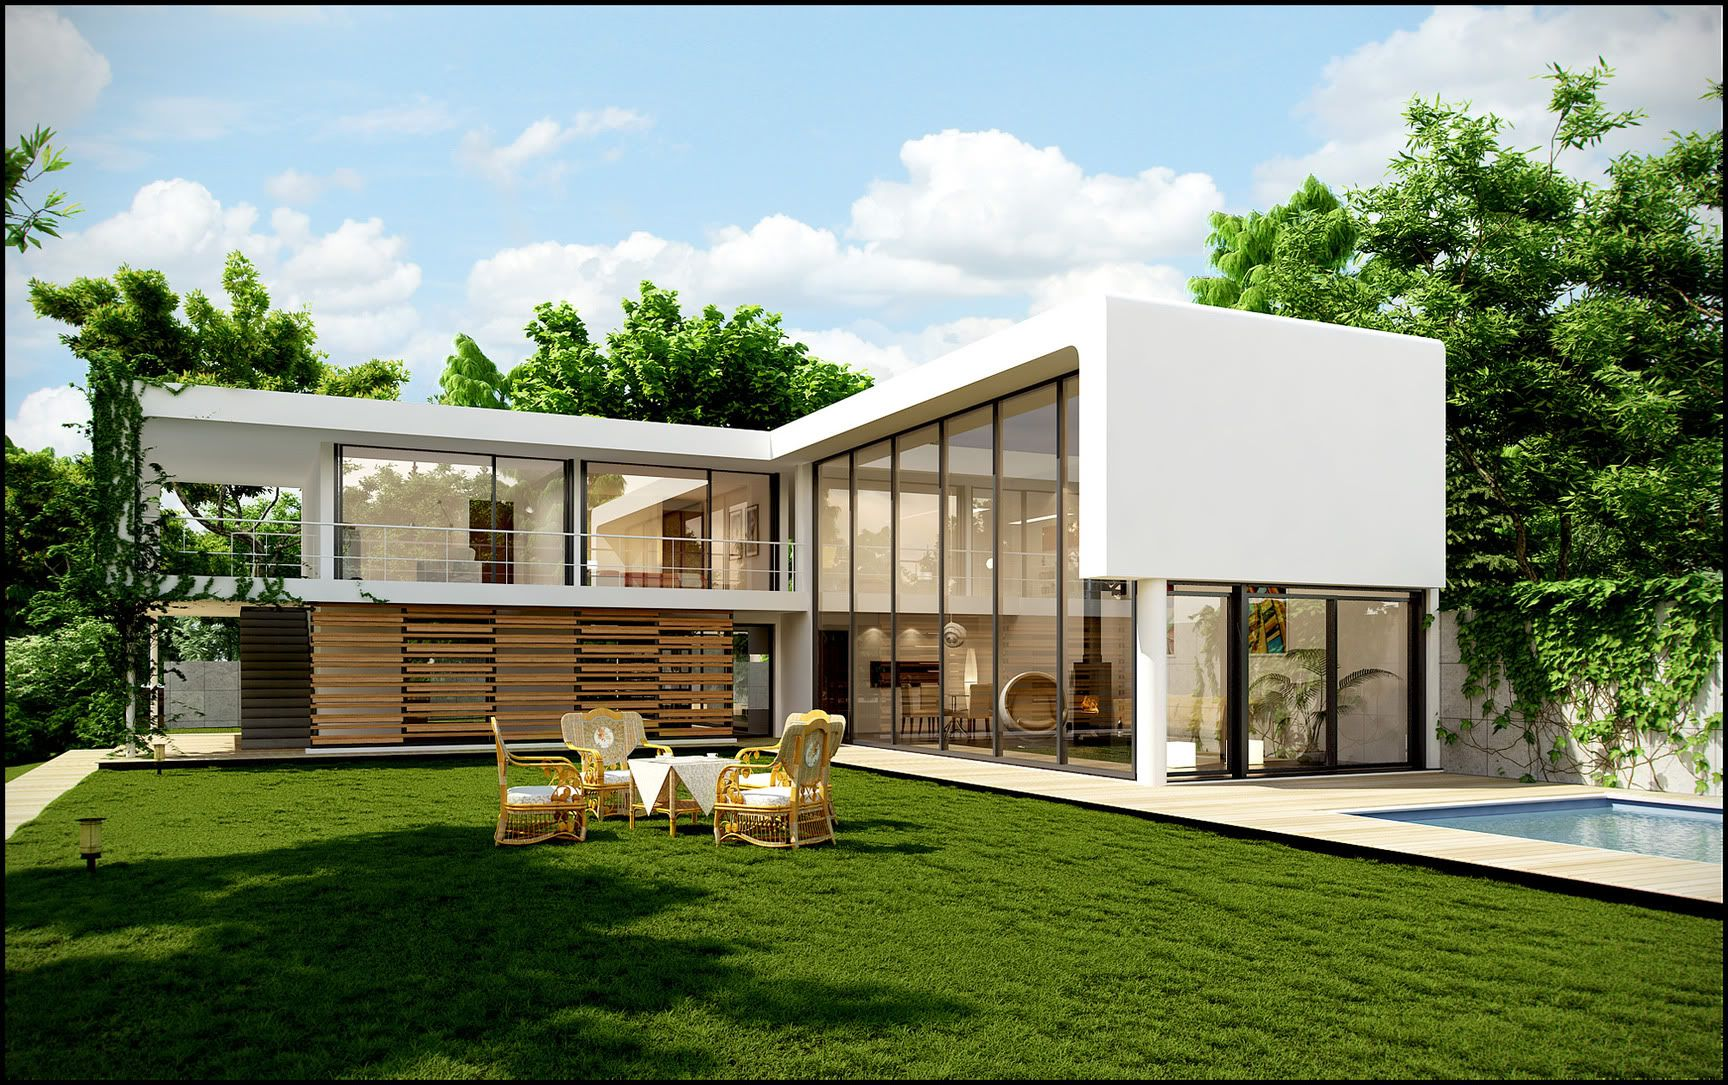 Architecture exterior impressive l shape small modern for Small house plans modern